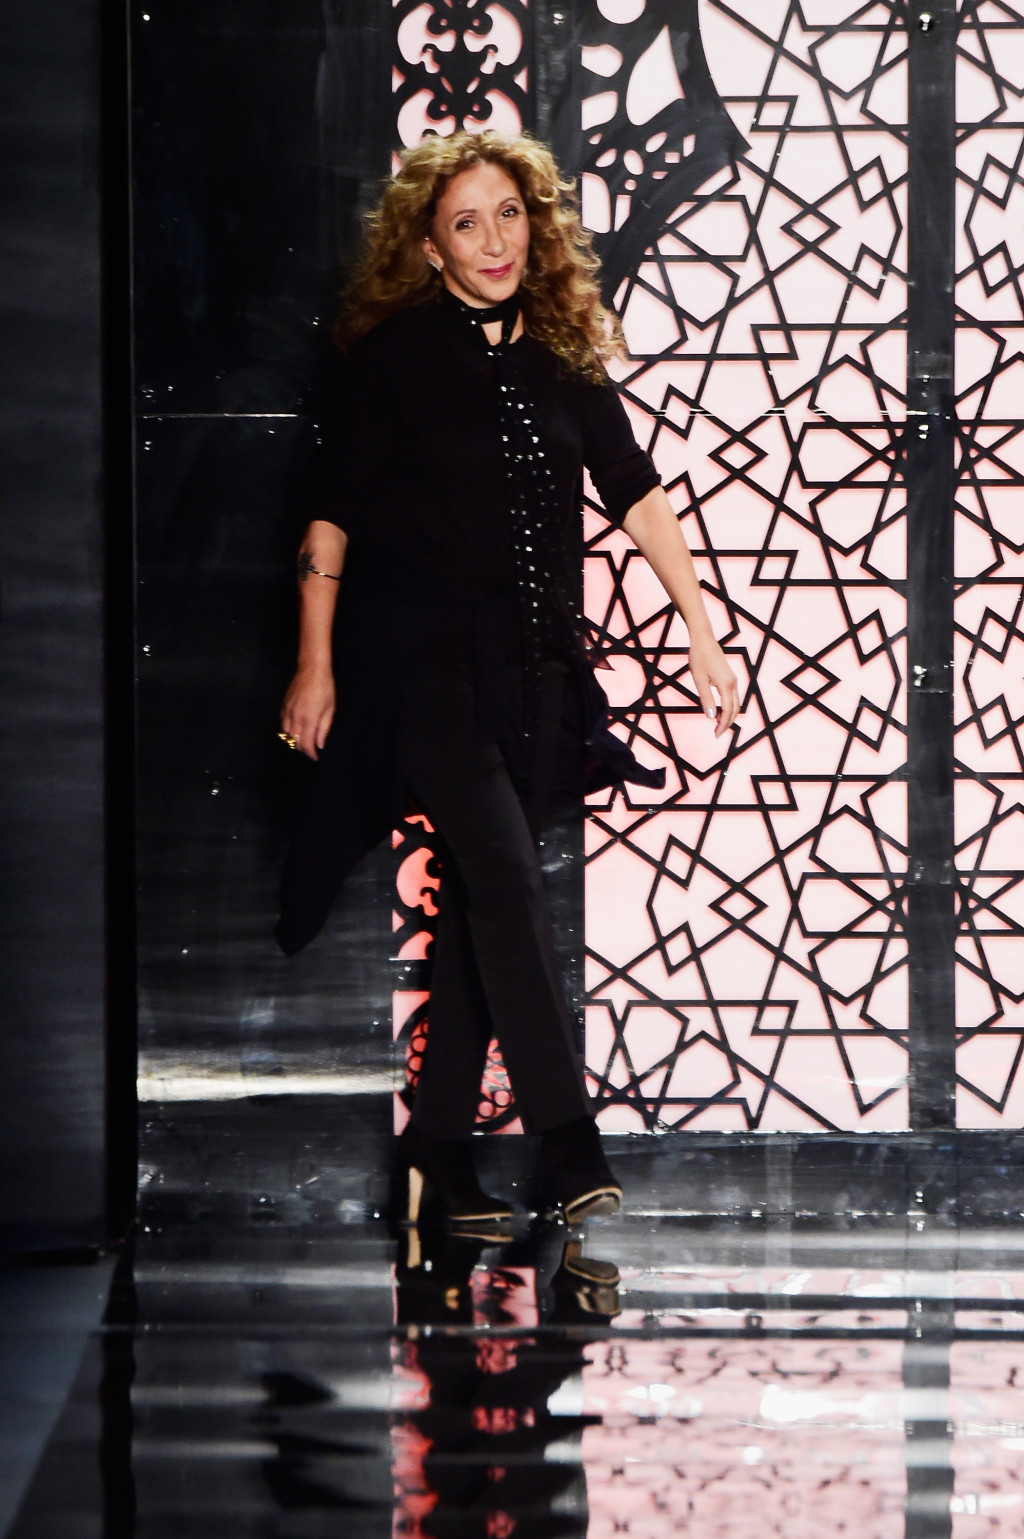 Reem Acra Talks to Savoir Flair about Her Role on 'Fashion Star'